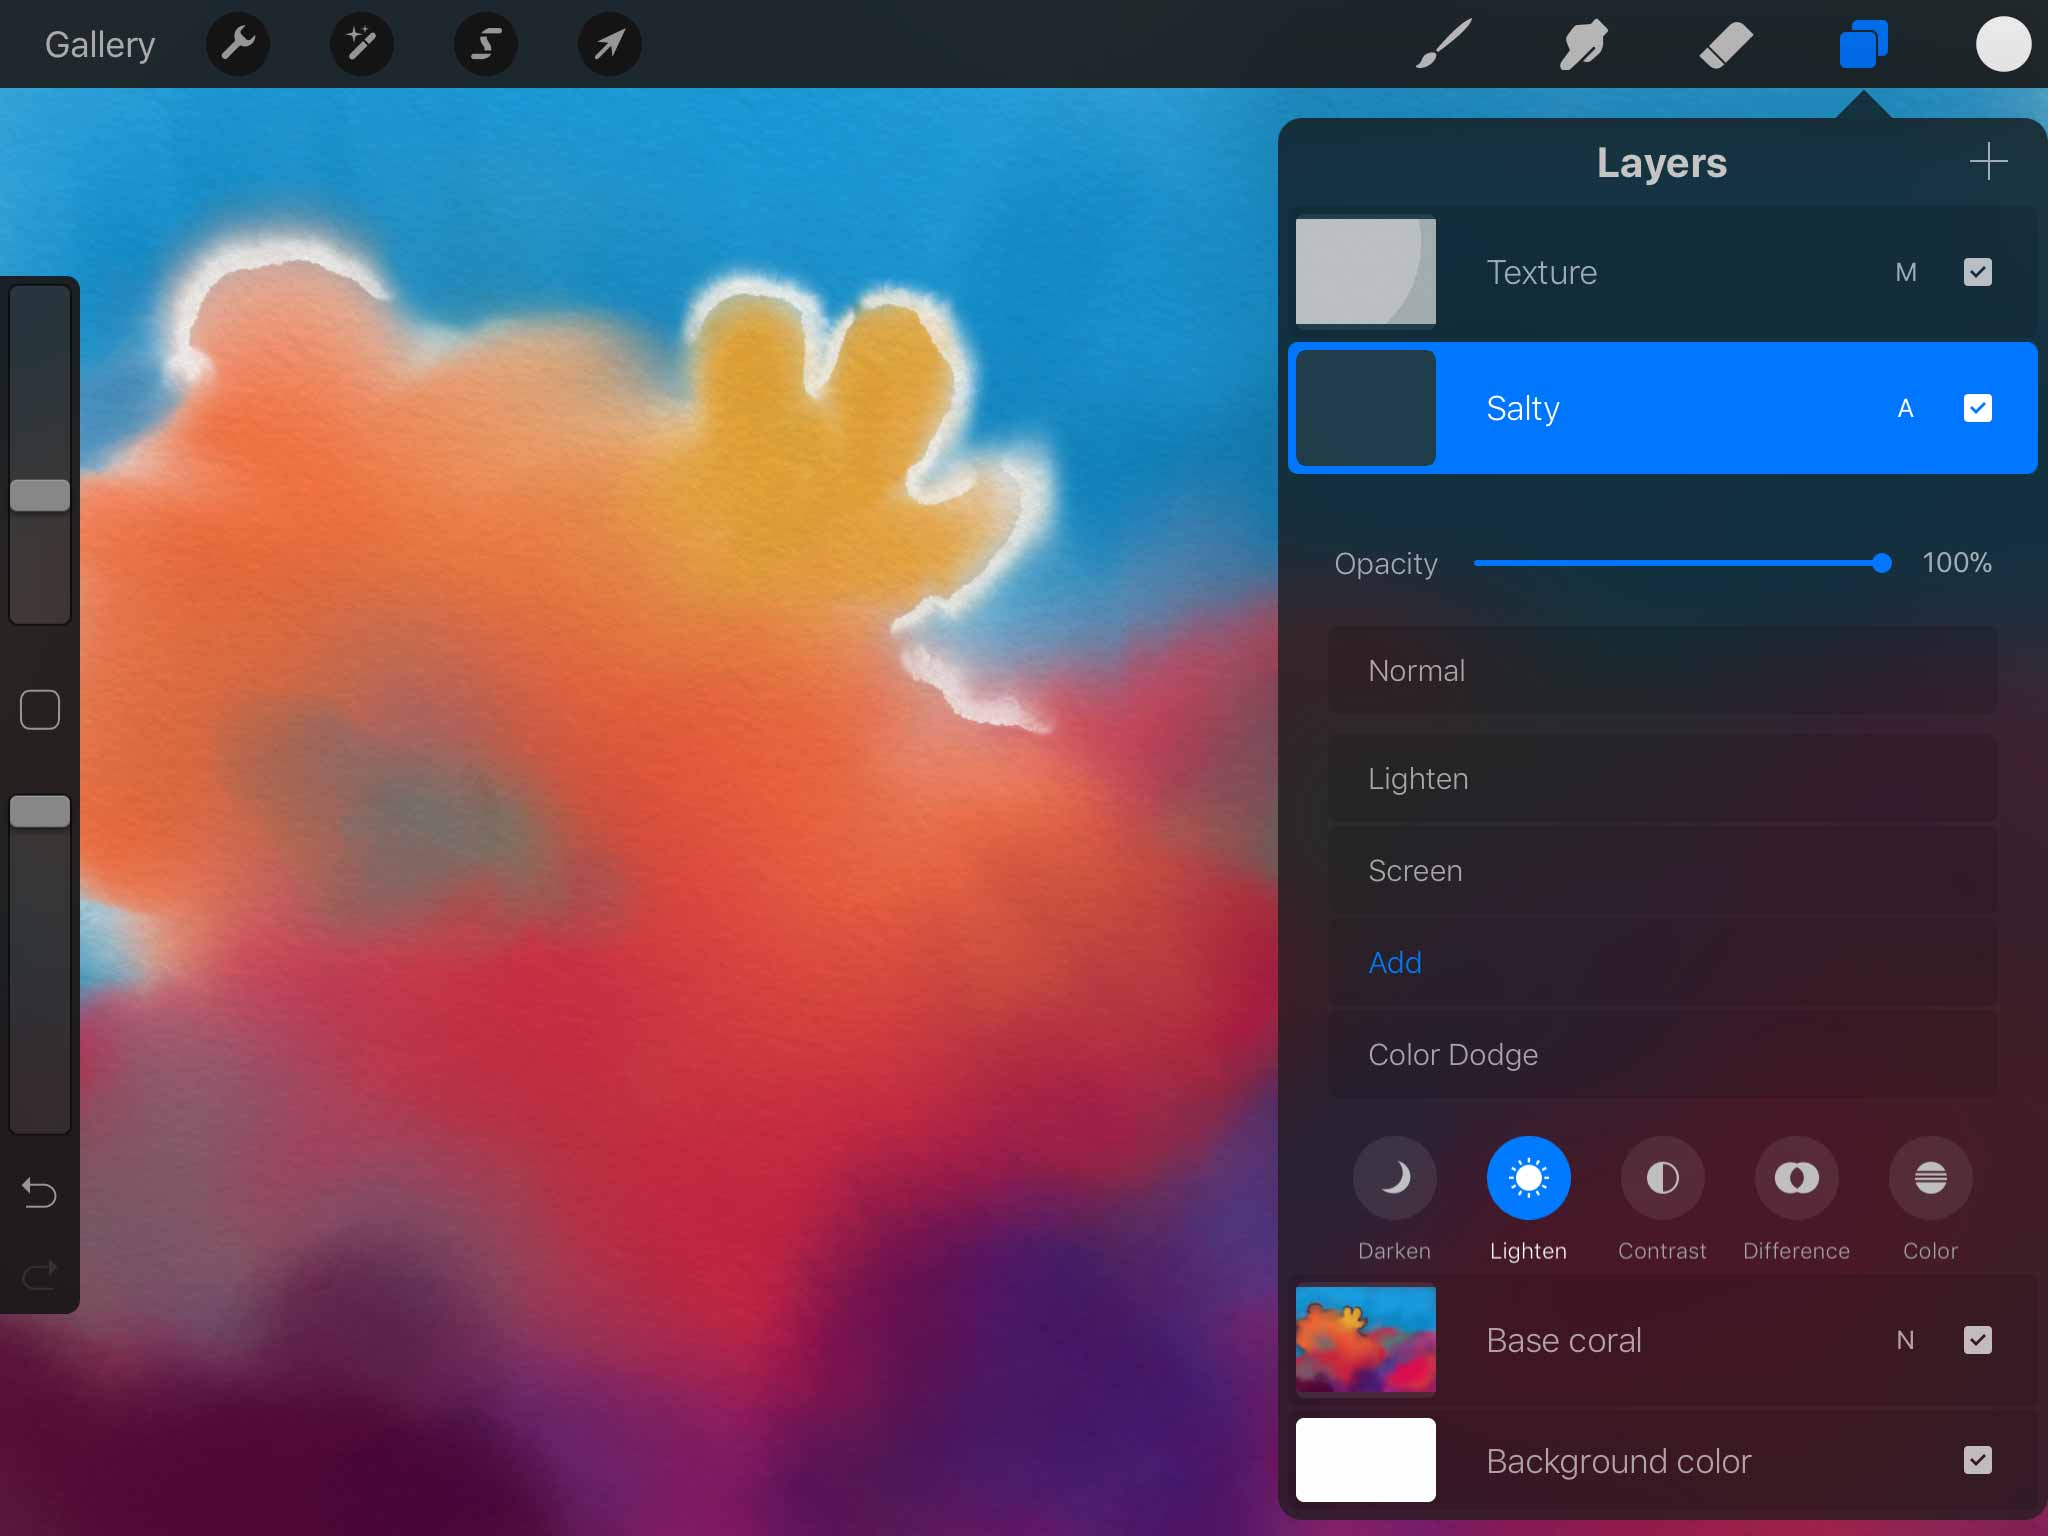 Screenshot of Procreate for iPad app's layer palette, showing a layer named